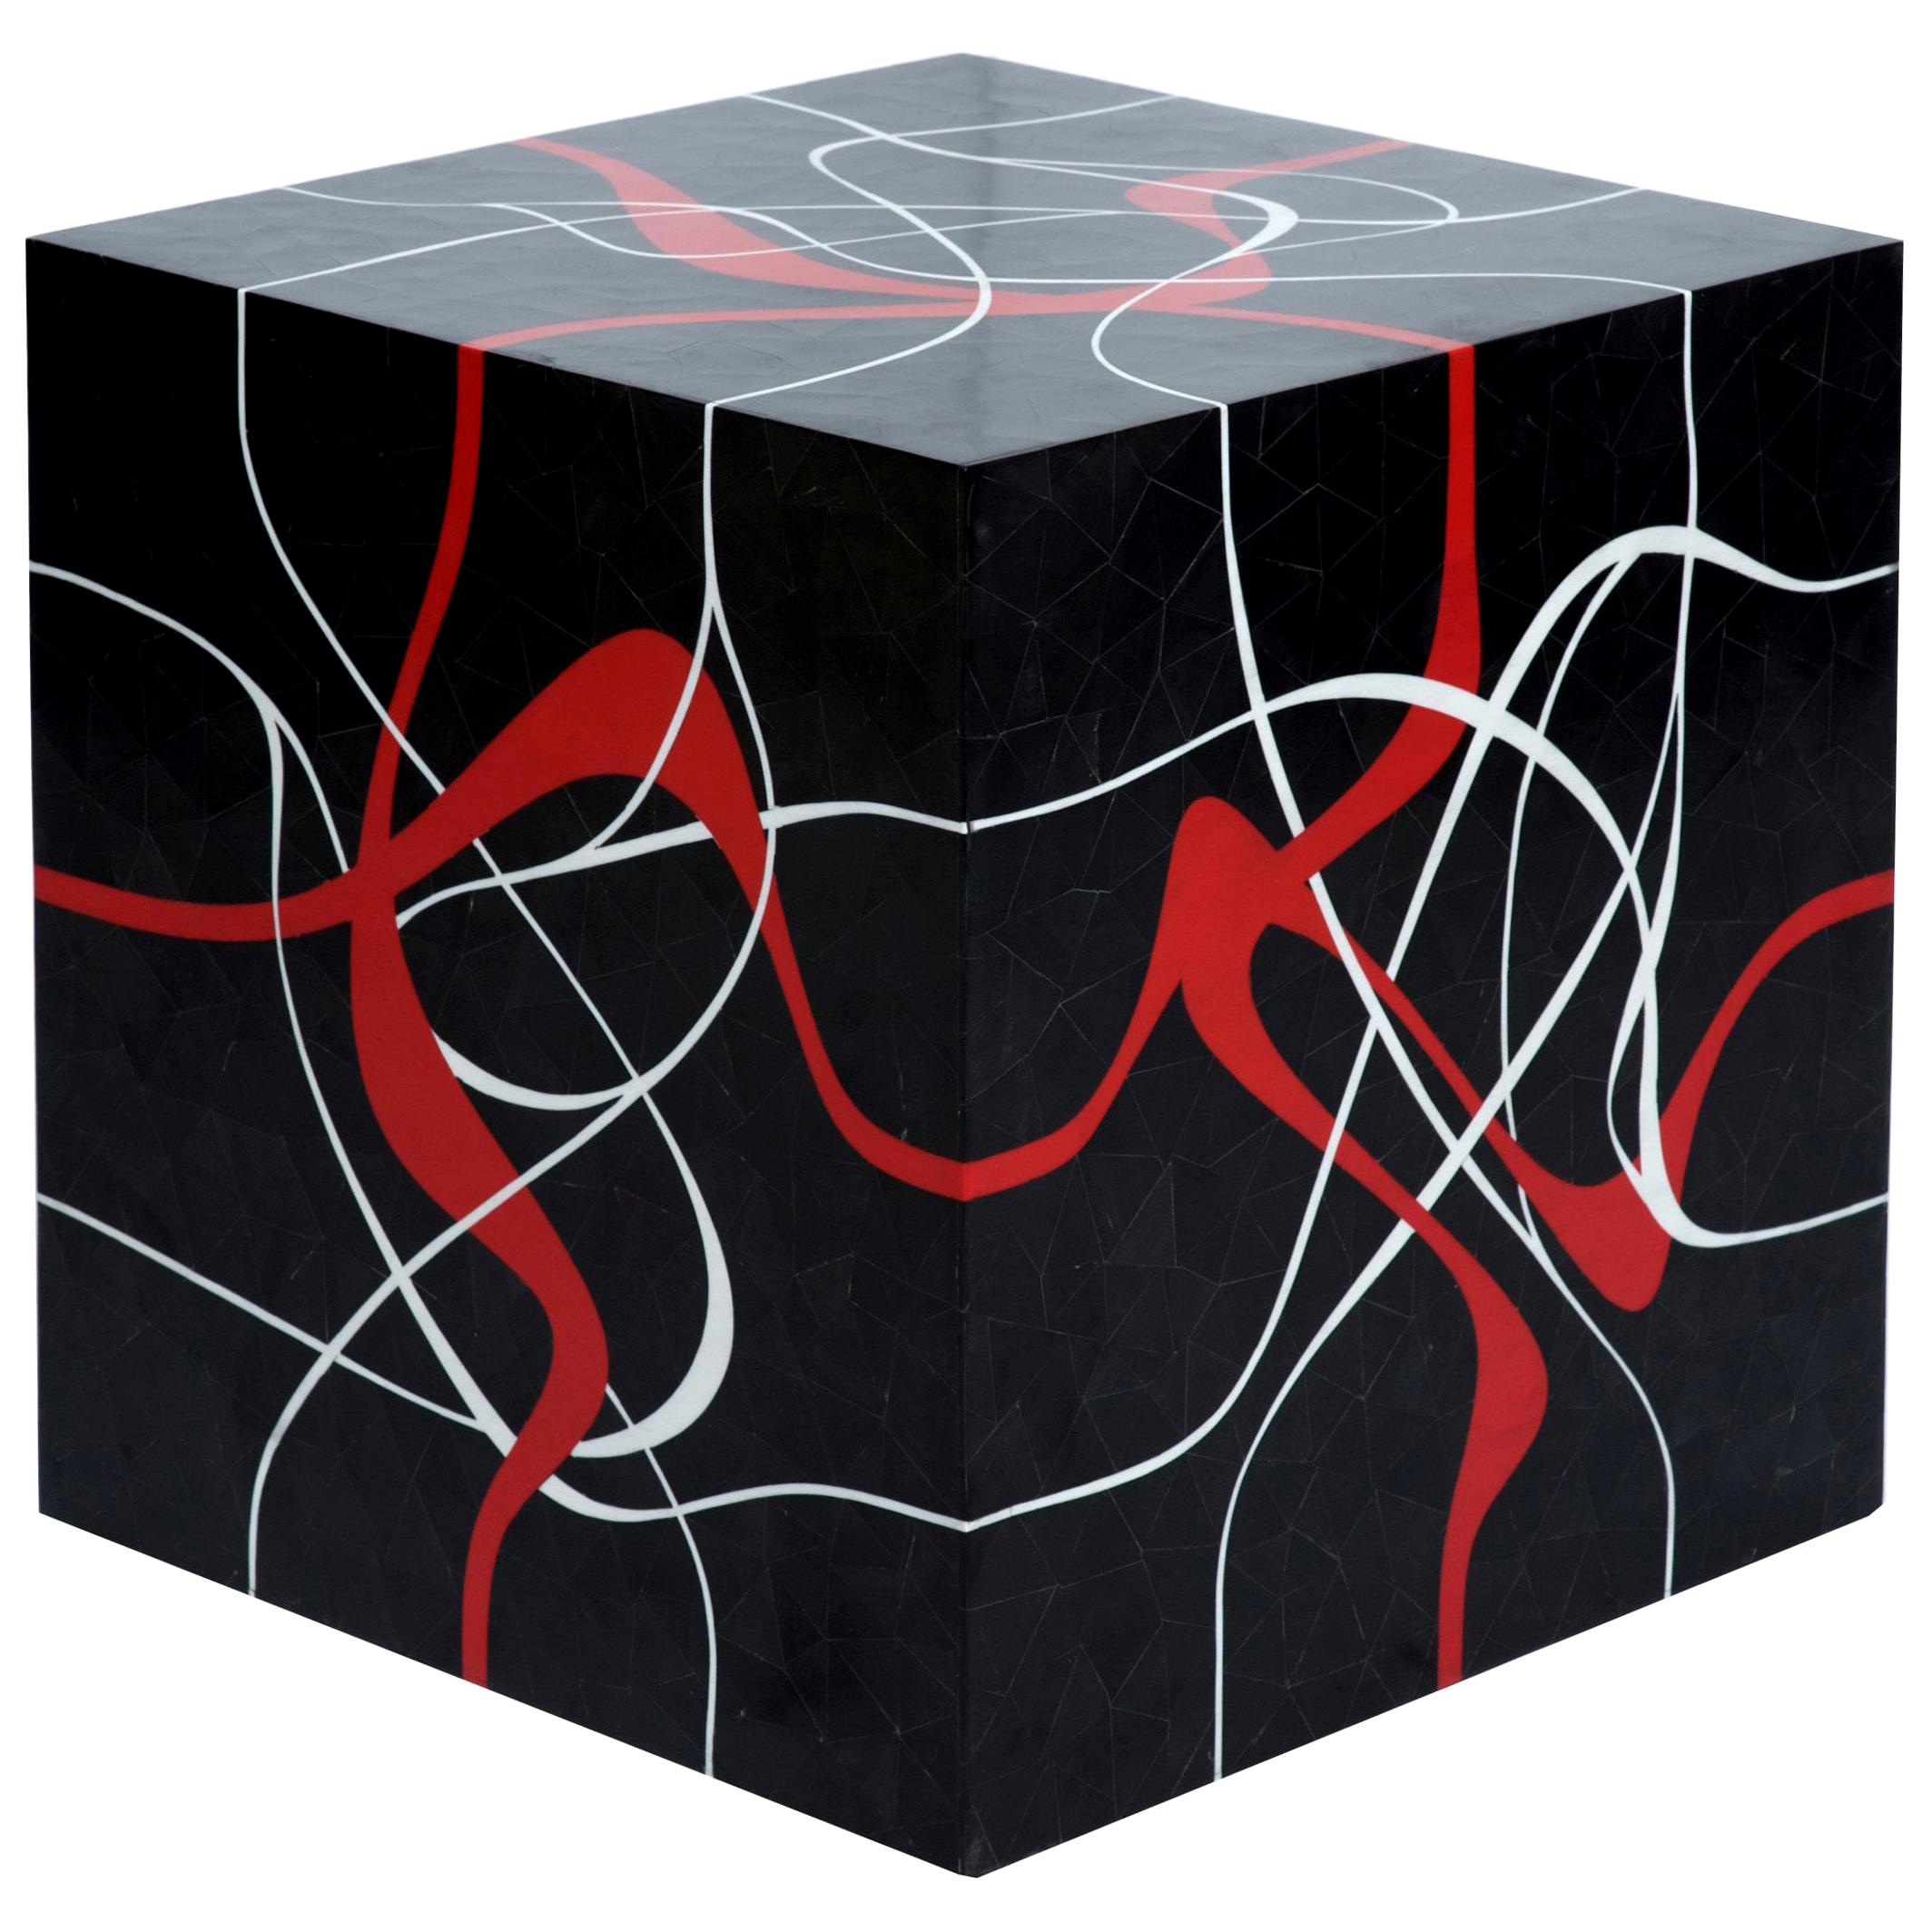 Modern Cube Table in Tessellated Horn with Graphic Red & Grey Resin Inlay- Dune